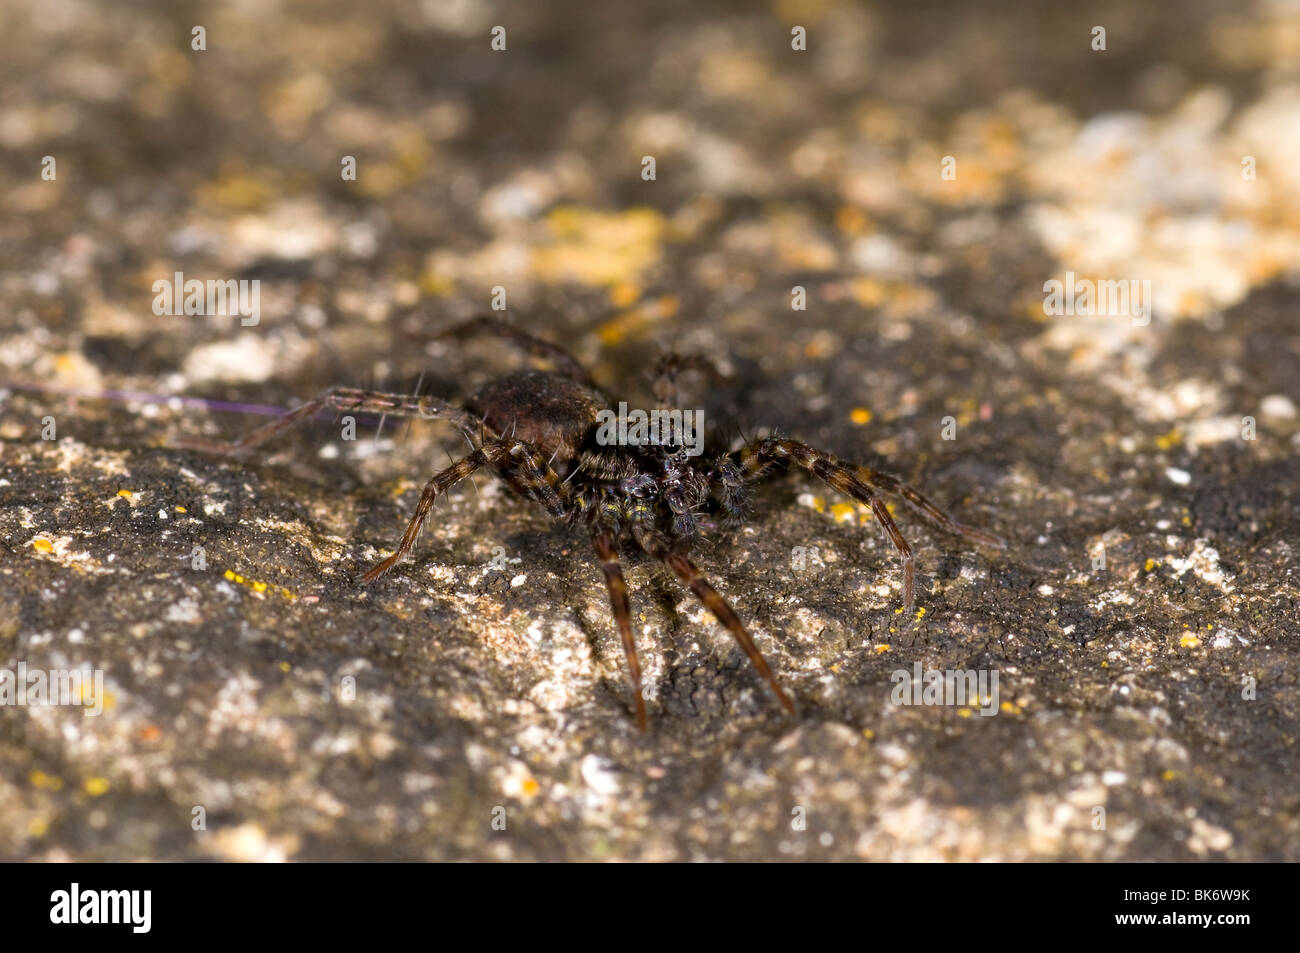 a wolf spider Pardosa Amentata, in a garden in the UK - Stock Image